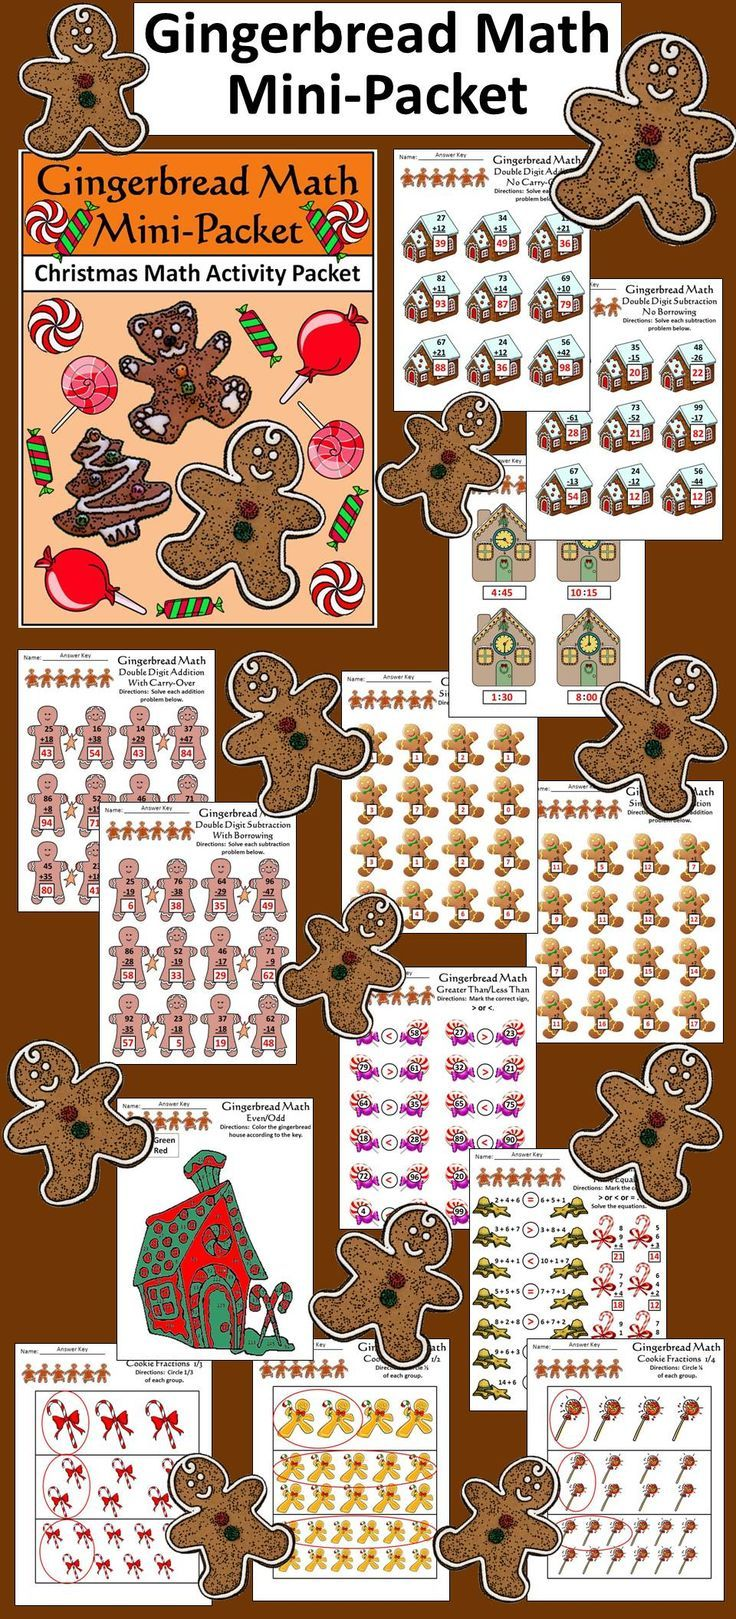 Gingerbread Math Drills Mini Packet: A Christmas math packet that provides many exercises with a tasty holiday theme.   Contents include: * Single Digit Addition Worksheet * Single Digit Subtraction Worksheet * Double Digit Addition No Carry-over * Double Digit Subtraction No borrowing * Double Digit Addition With Carry-over * Double Digit Subtraction With borrowing * Greater Than, Less Than, Equal To * Even / Odd * Fractions 1/2, 1/4, 1/3 Worksheet * Telling Time